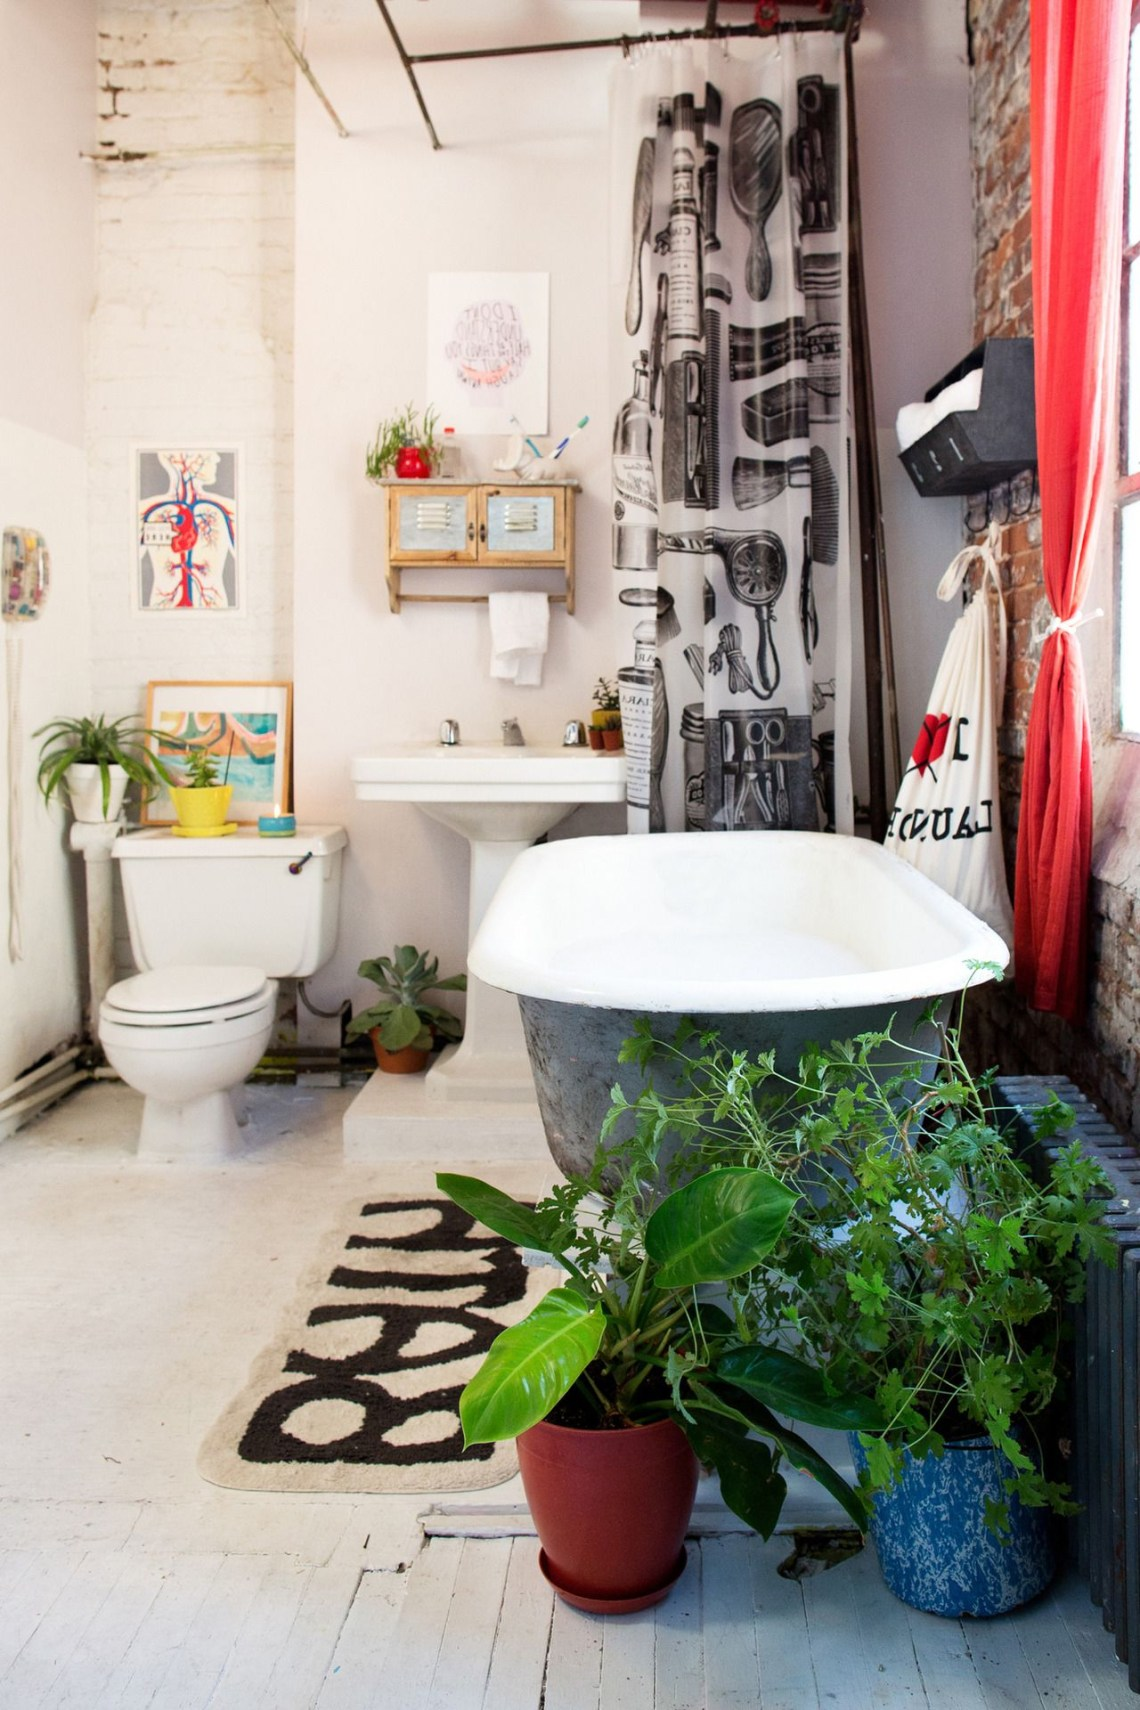 How To Make A White Apartment Bathroom Yours Mixed